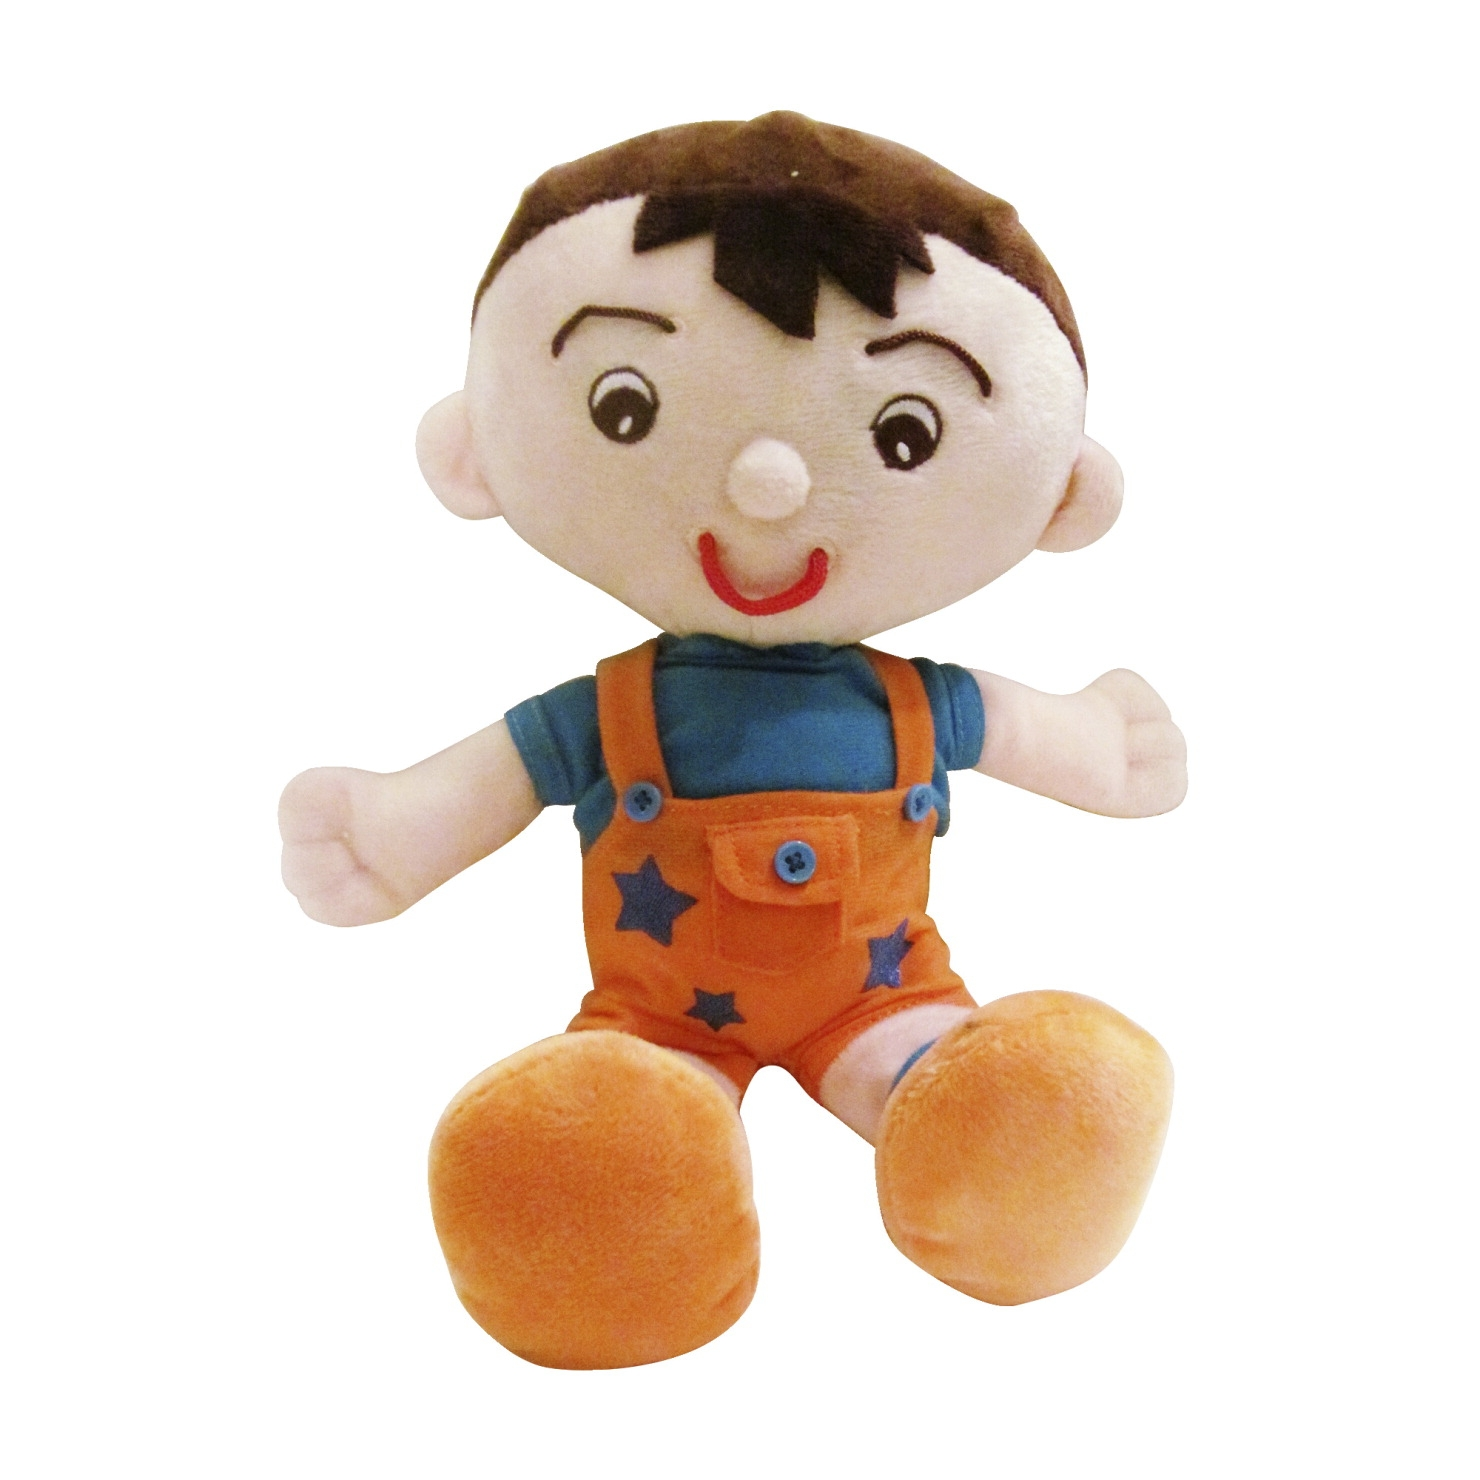 Emotiplush Tommy Doll - 1543369 - Toys Dolls Playsets & Toy Figures Doll & Action Figure Accessories 1543369